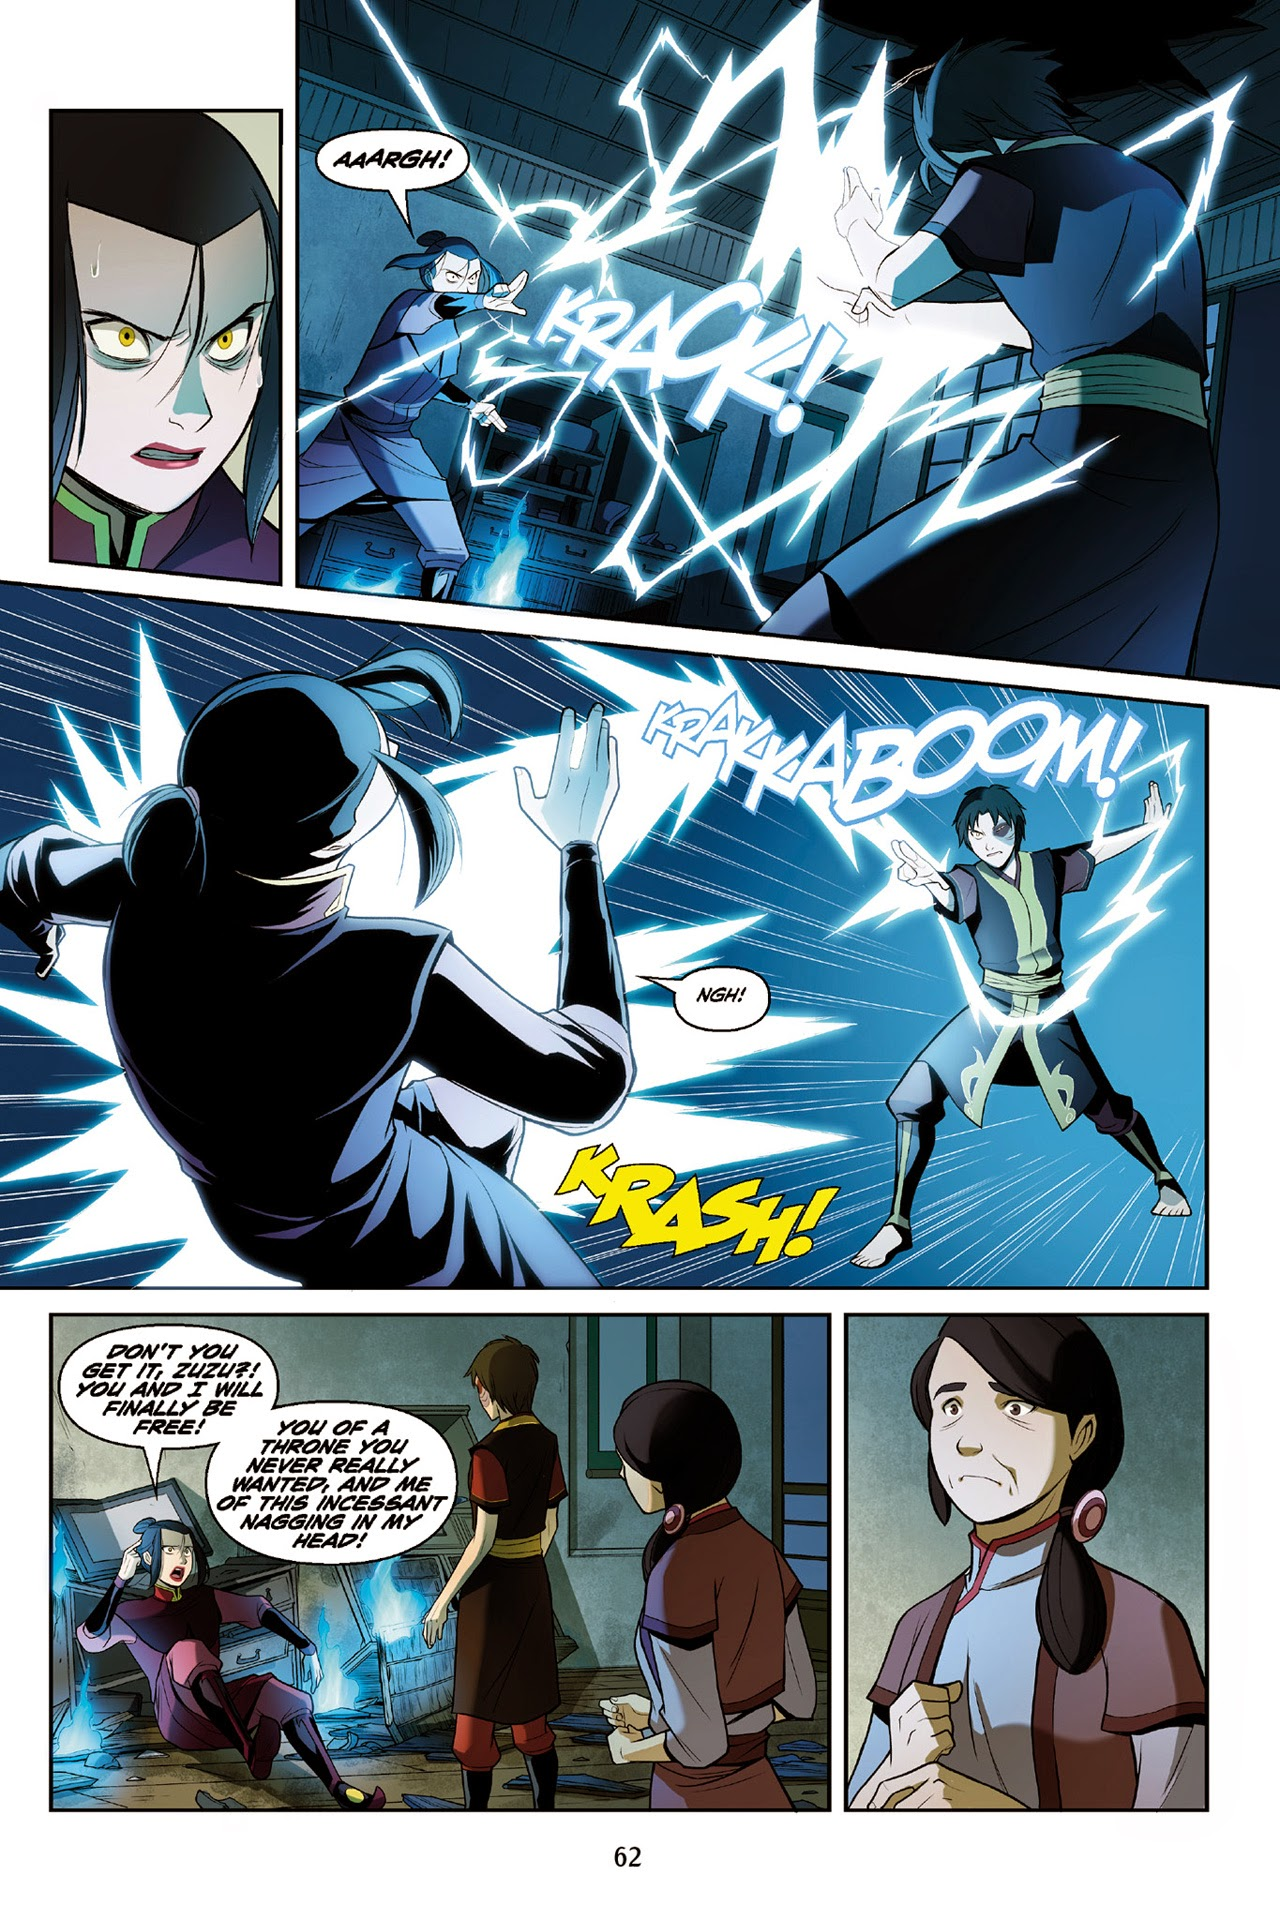 Read manga Avatar: The Last Airbender - The Search Part 3 B